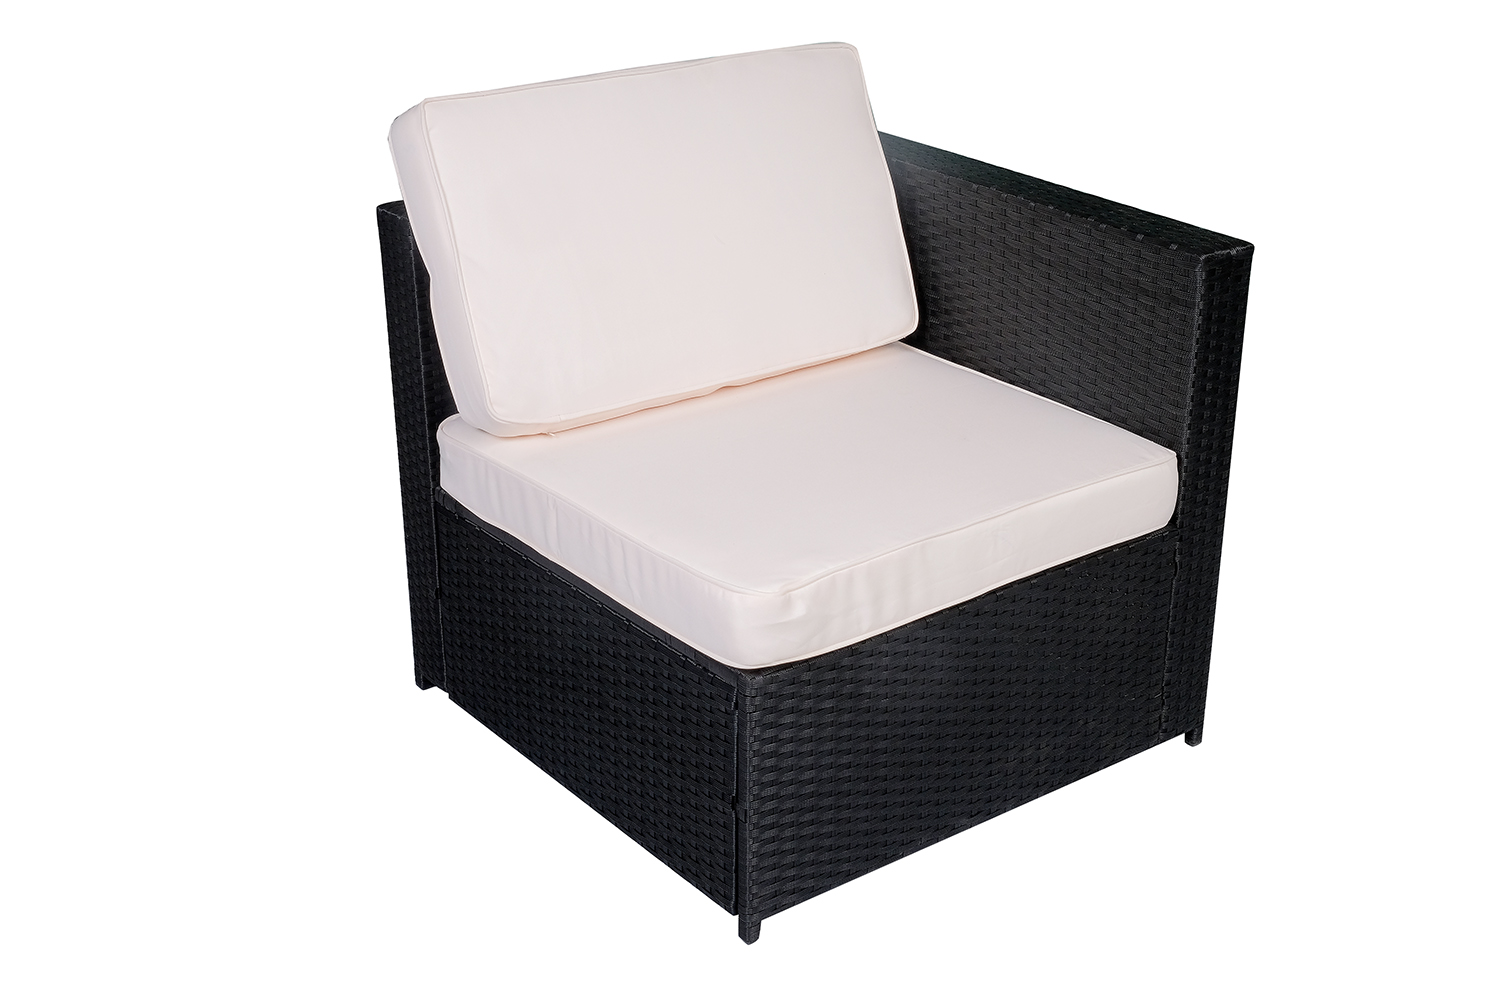 Rattan Sofa Set Ebay Black Wicker Patio Sectional Outdoor Sofa Furniture Set